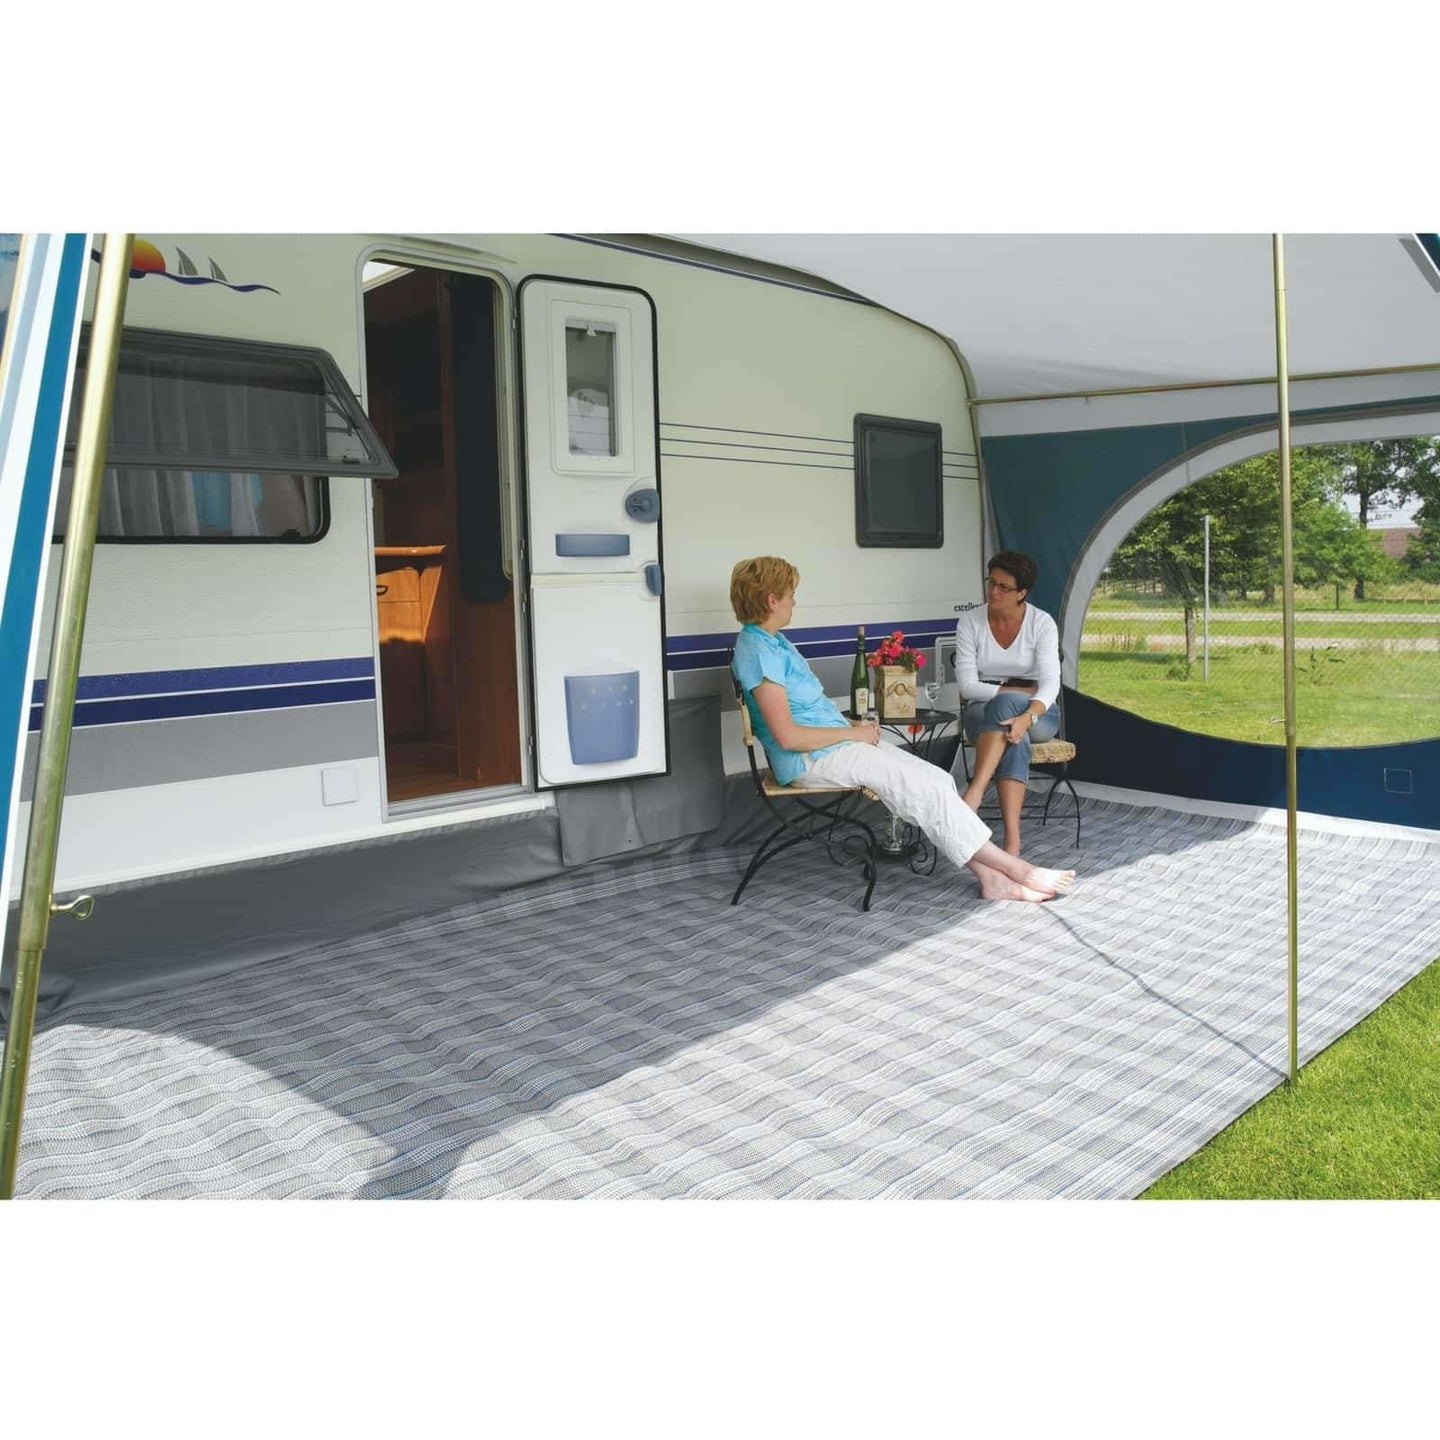 Jolax Awning Carpet for Kip Kompakt, Eriba Feeling, Trigano Silver, Knaus made by Walker. A Add-ons sold by Quality Caravan Awnings